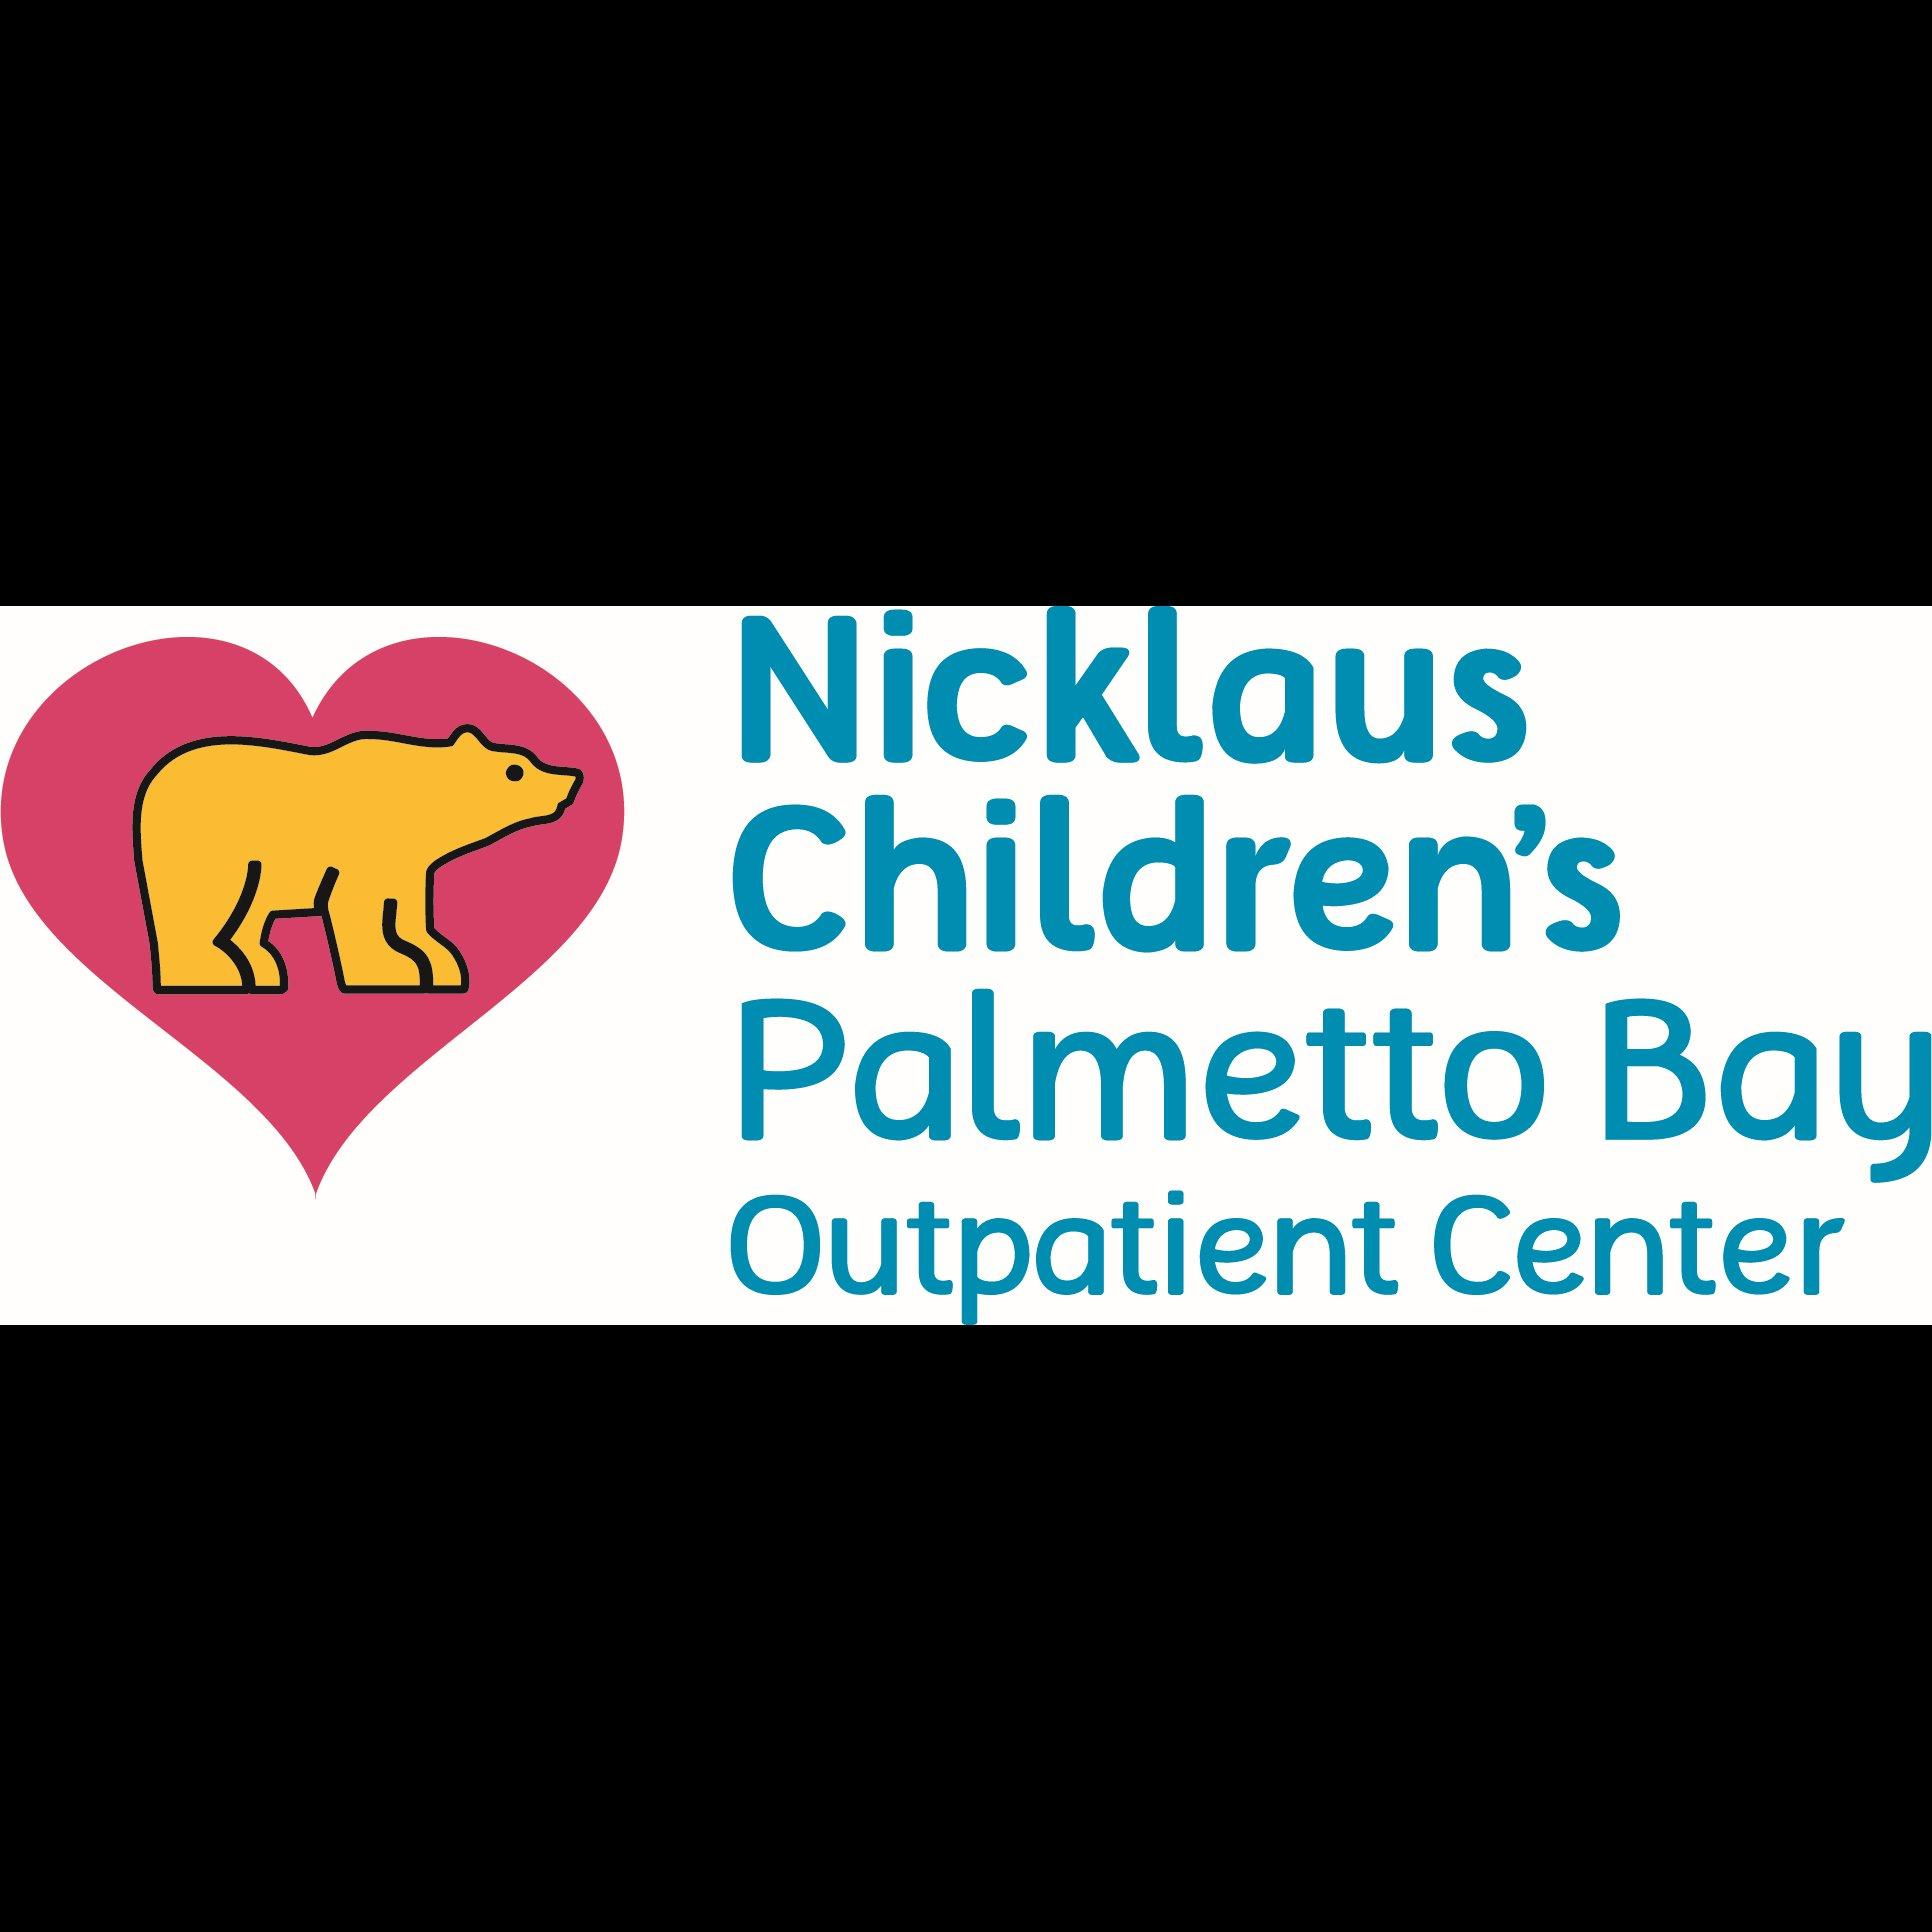 Nicklaus Children's Palmetto Bay Outpatient Center